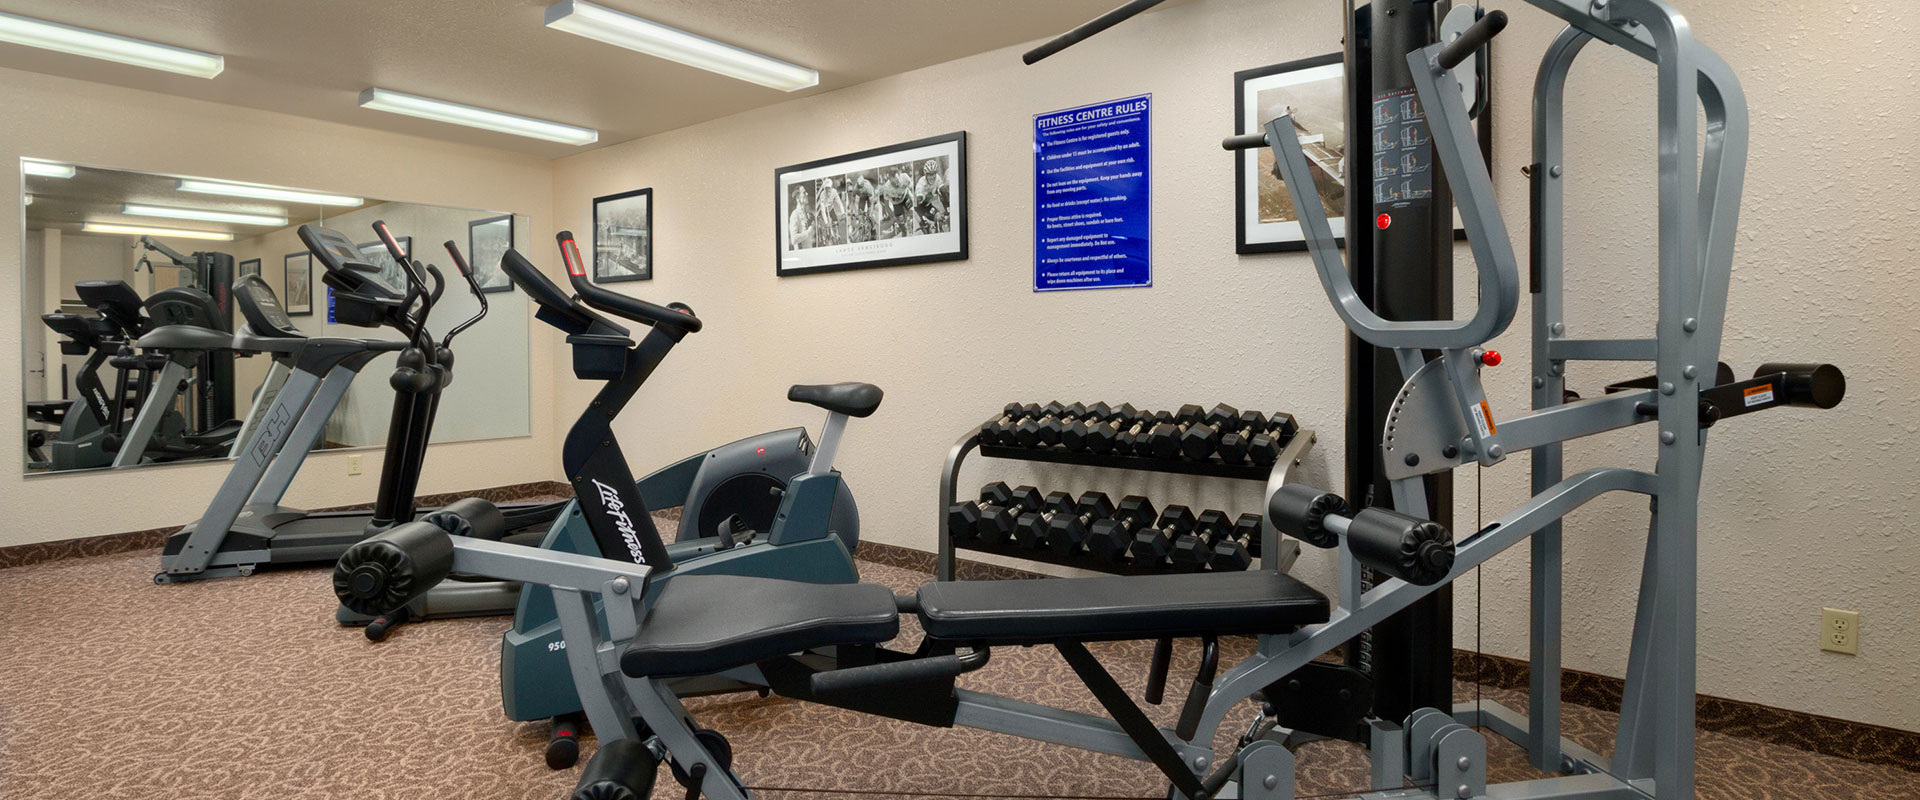 The fitness centre at Days Inn Red Deer, Alberta features several pieces of modern exercise equipment, weights and a large mirror in the area.